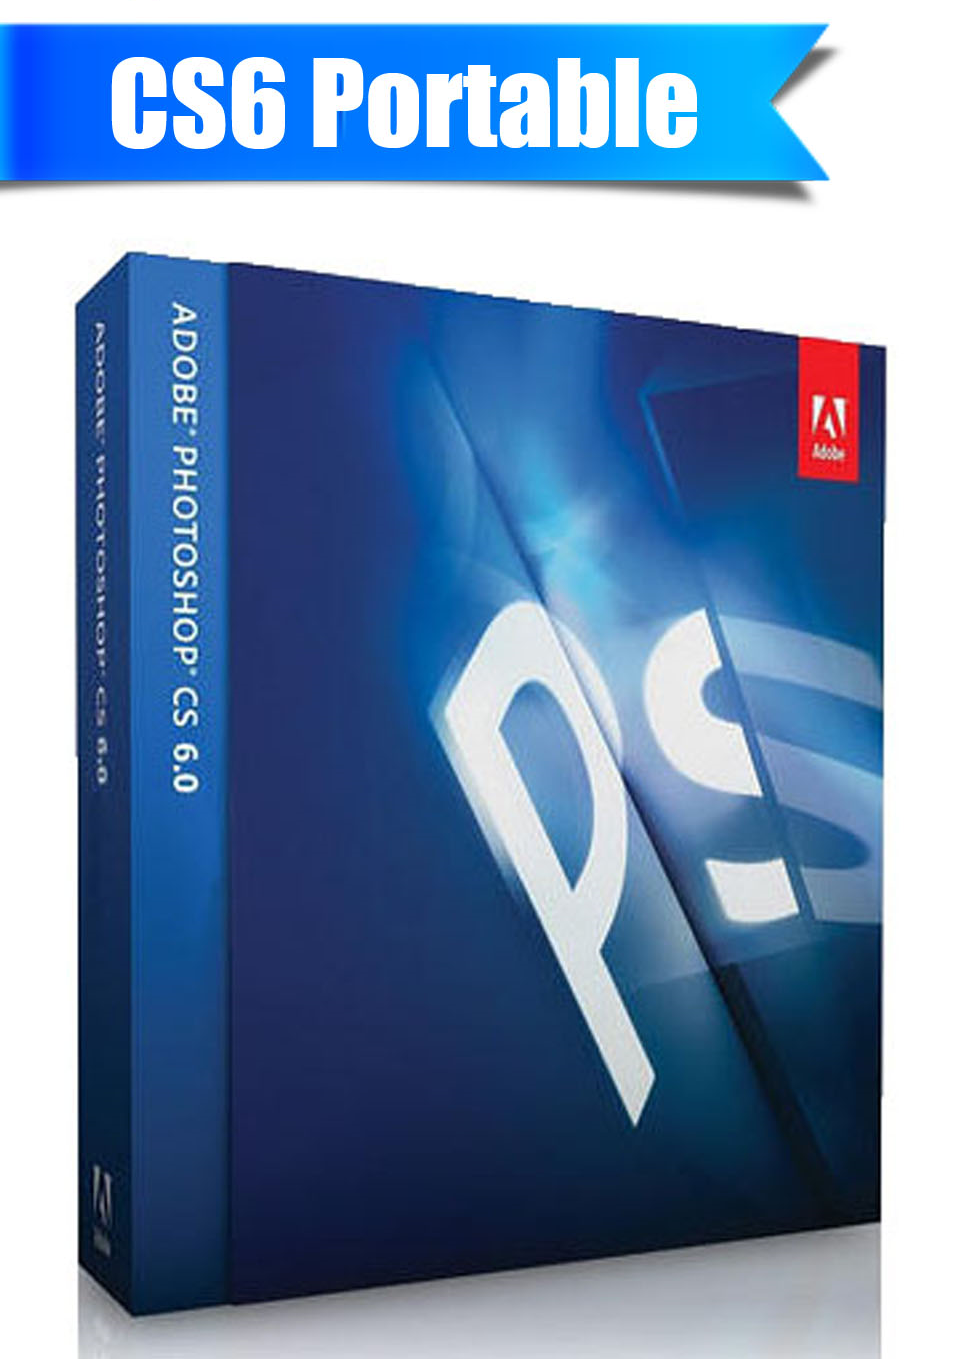 Adobe photoshop cs6 extended cool release